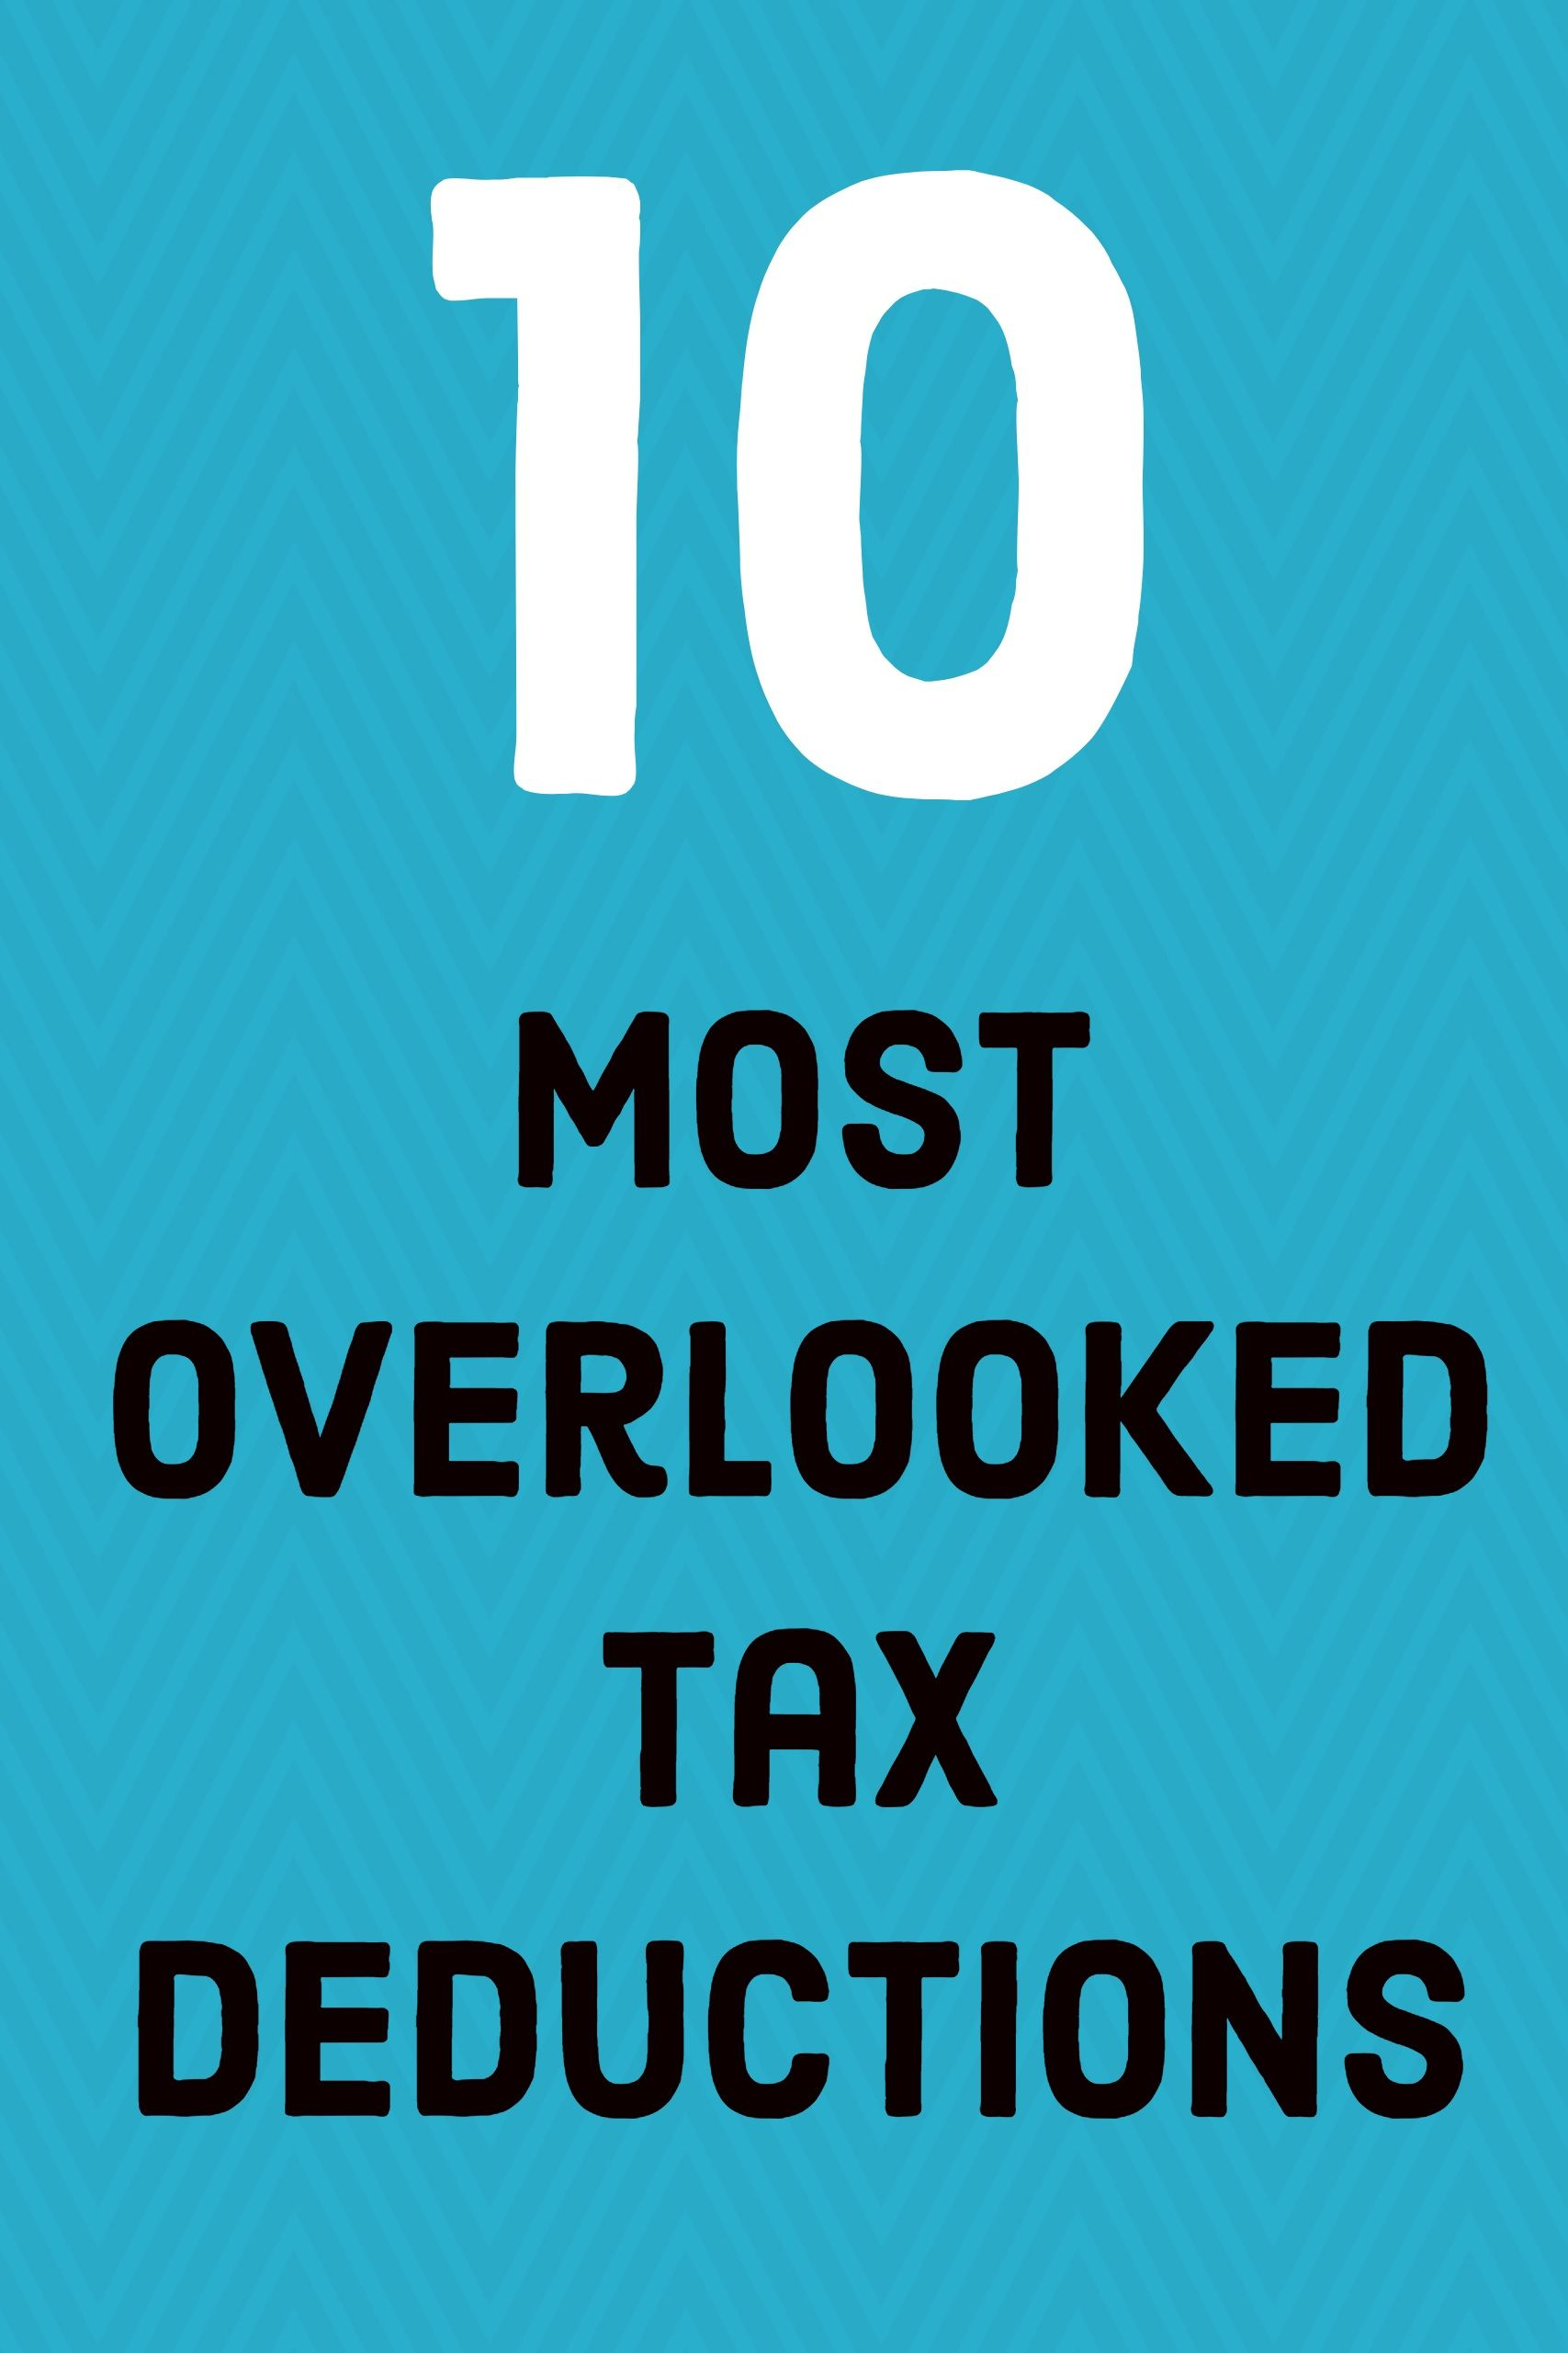 List Of Tax Deduction Ideas For Itemized Deductions On Your Federal Ta